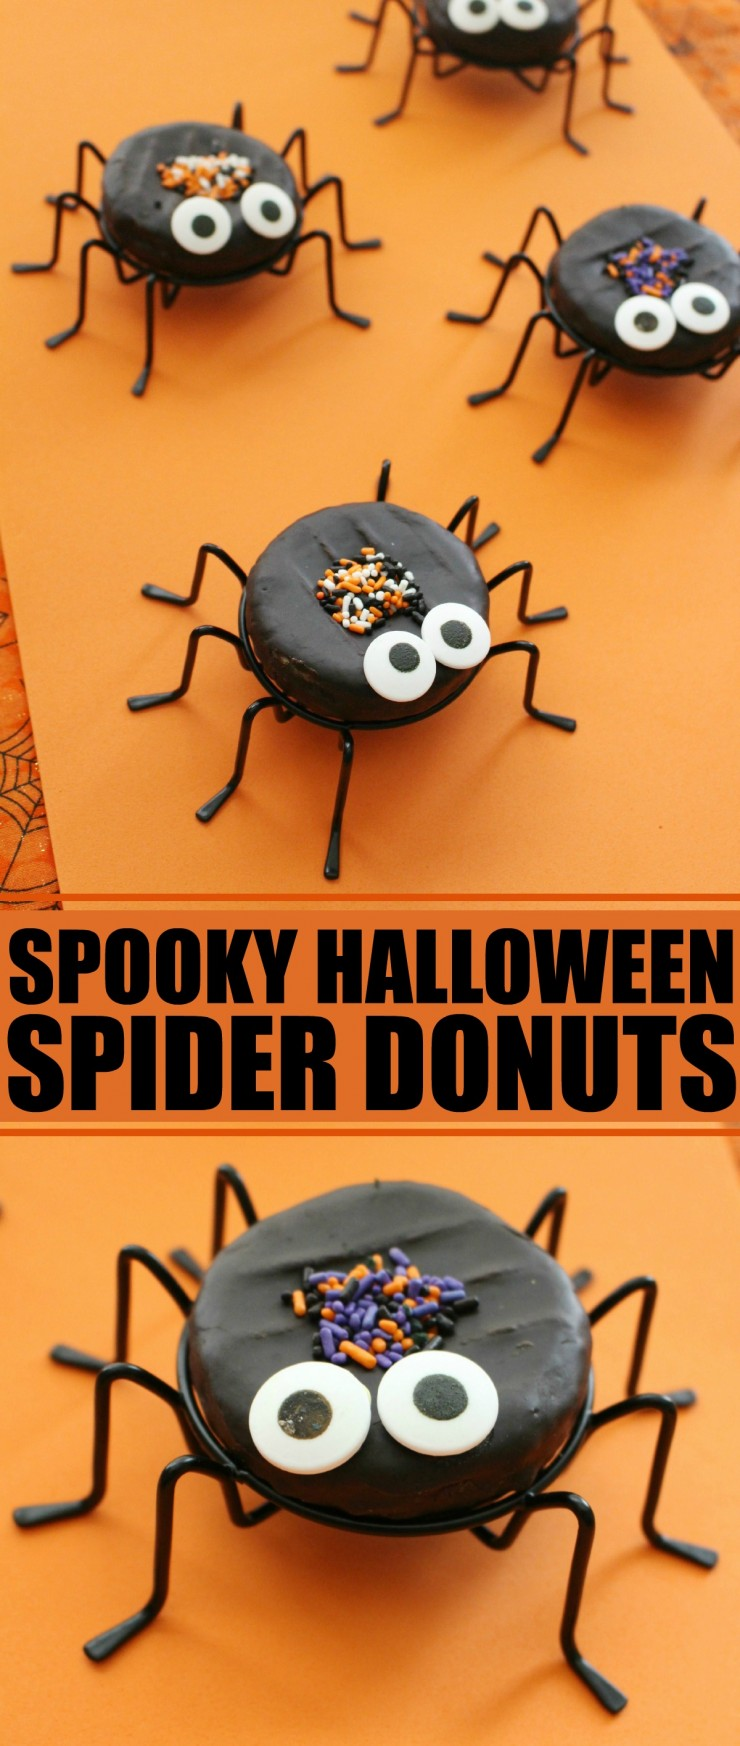 Spooky Halloween Spider Donuts - Frugal Mom Eh!